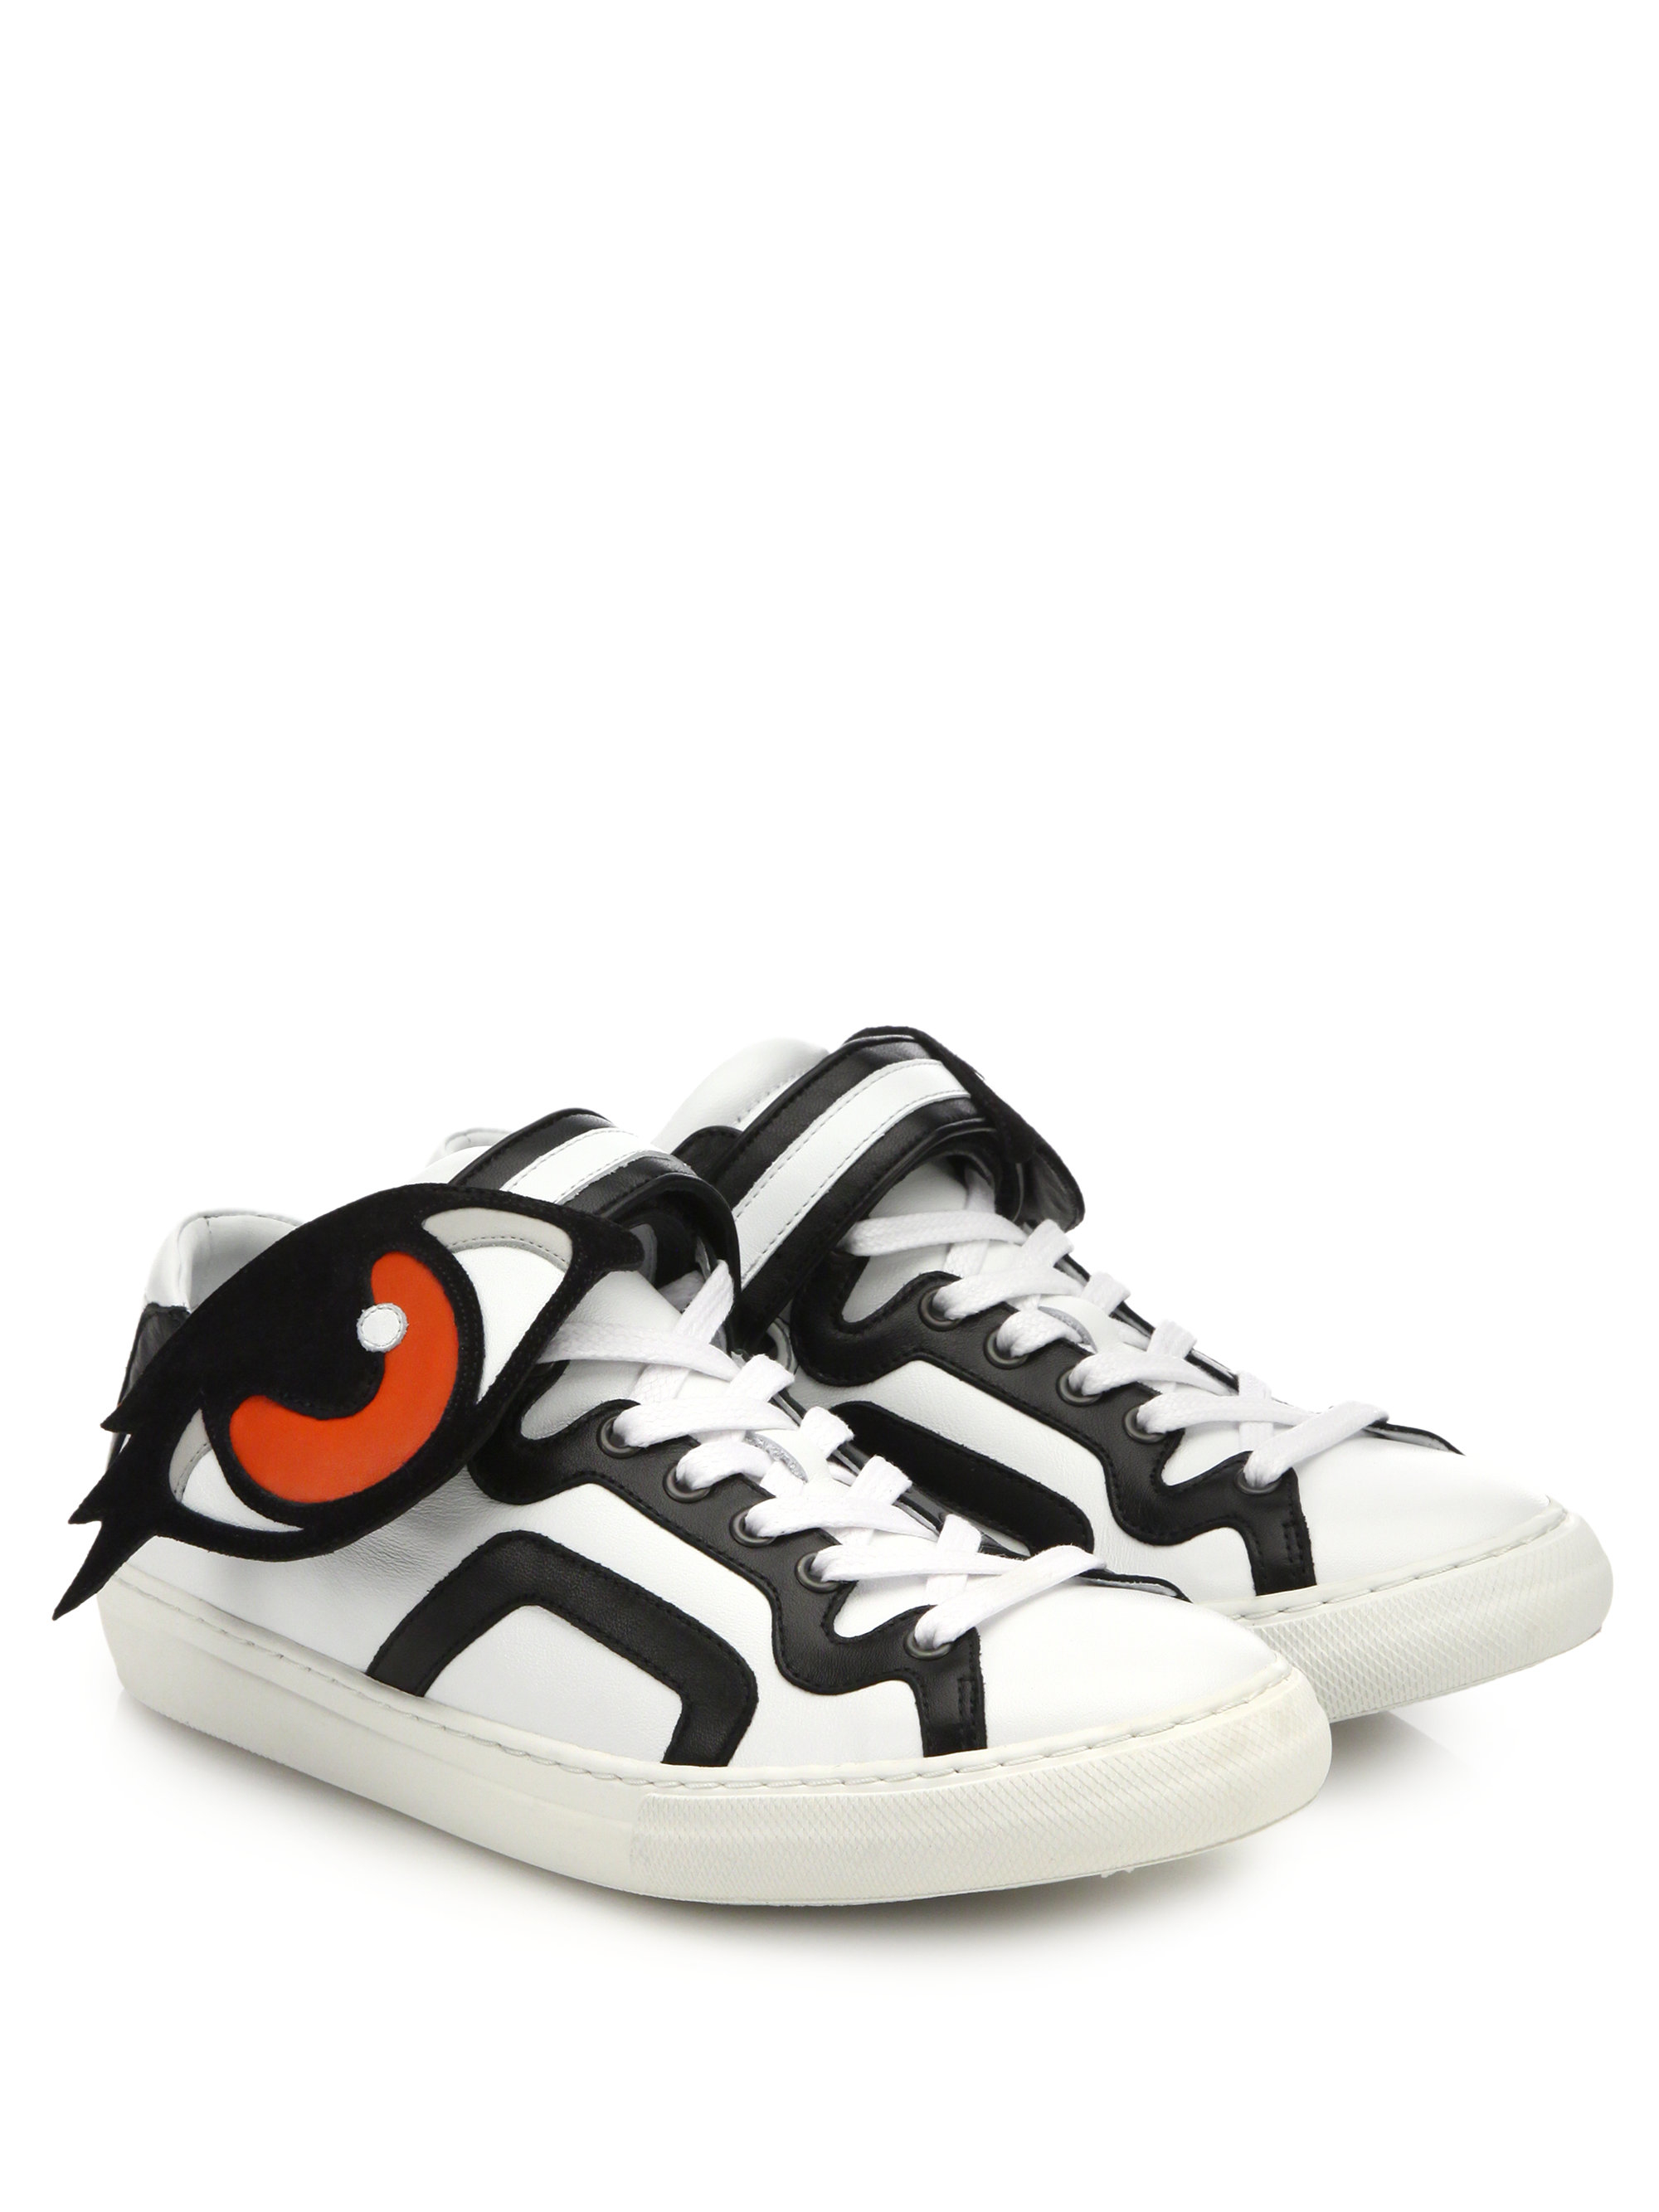 Cool High Top Shoes For Men